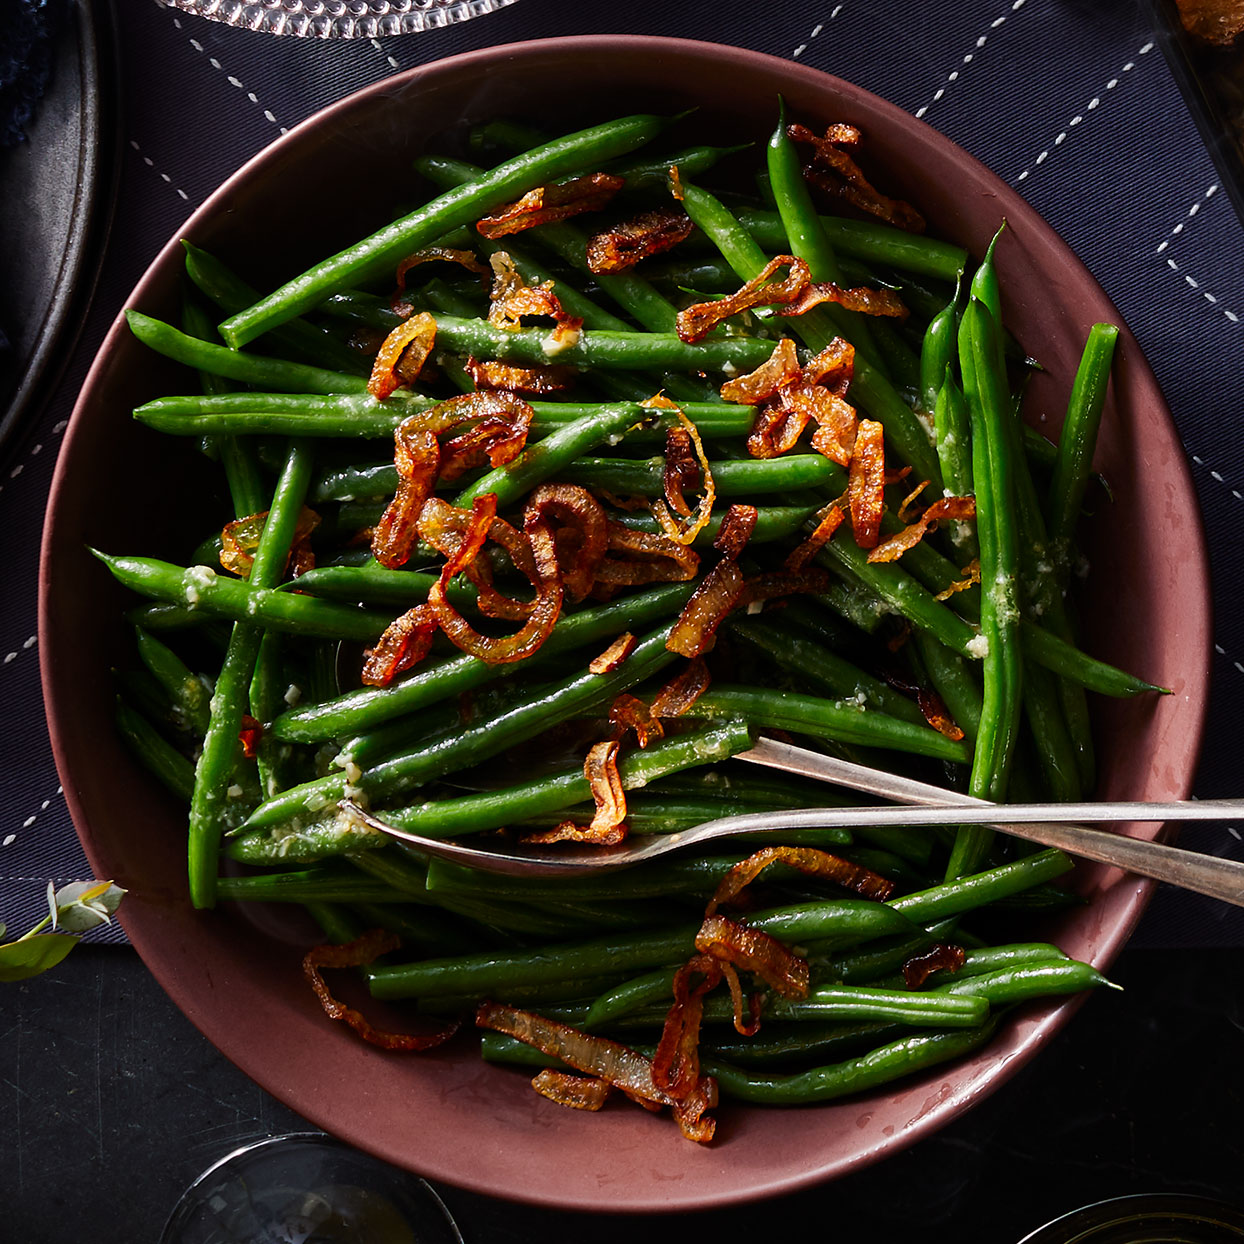 Here's a new way to delight your green-bean-loving guests. The genius of this easy green bean recipe is in the dressing, which is made with savory oil that has also been used to fry shallots and garlic.